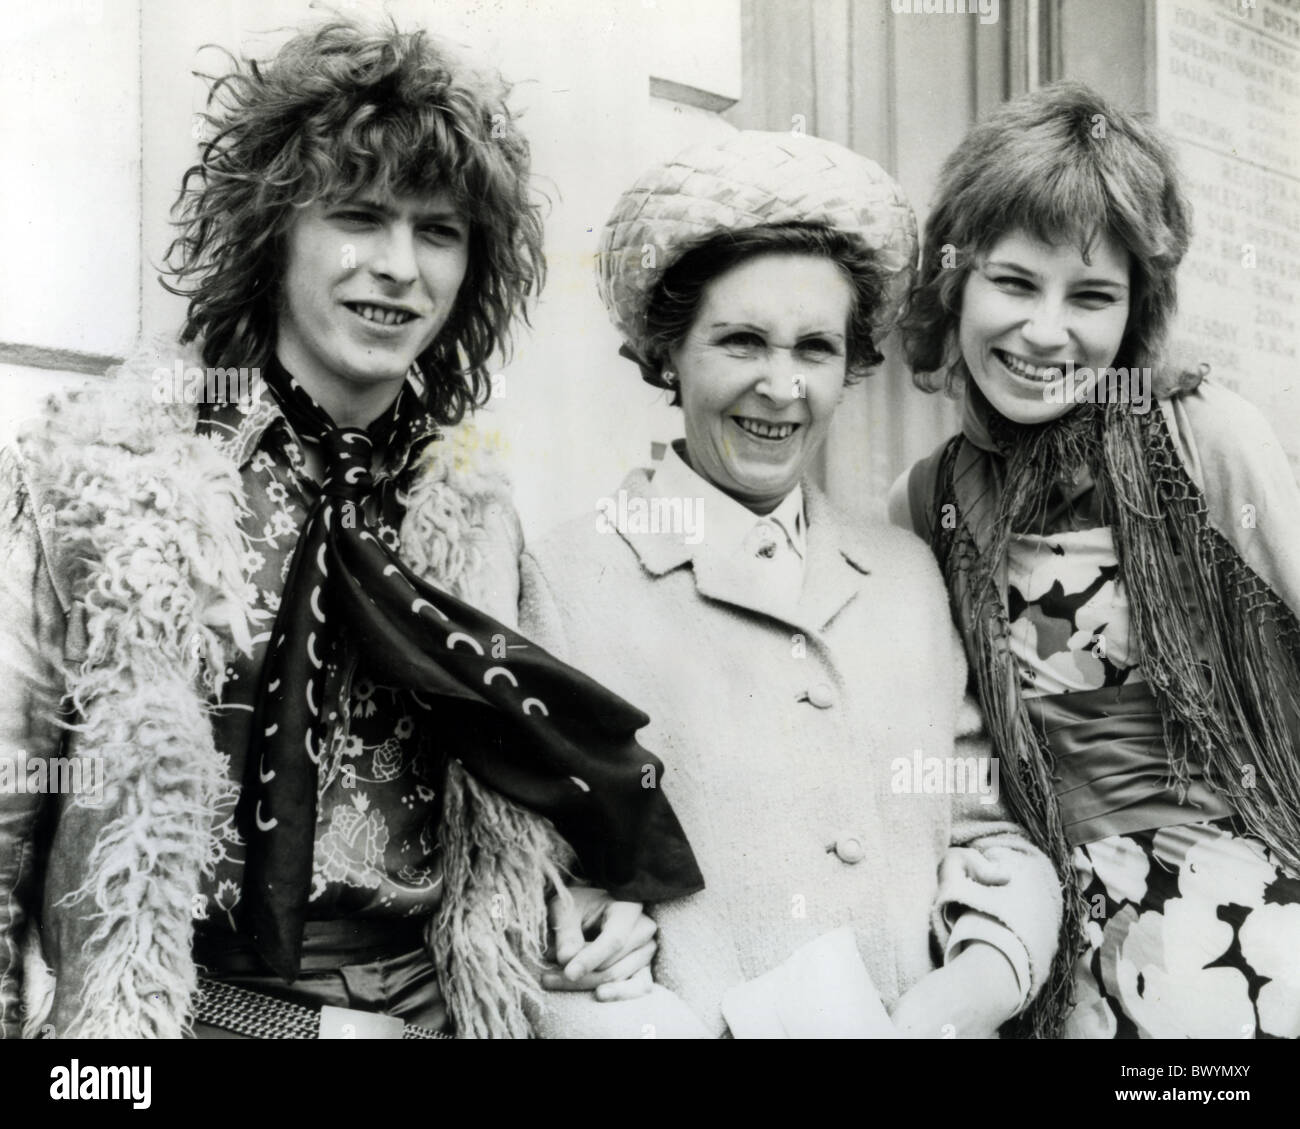 DAVID BOWIE outside Bromley Registry office on 20 March 1970 after marrying Angie Barnett seen here with her mother - Stock Image